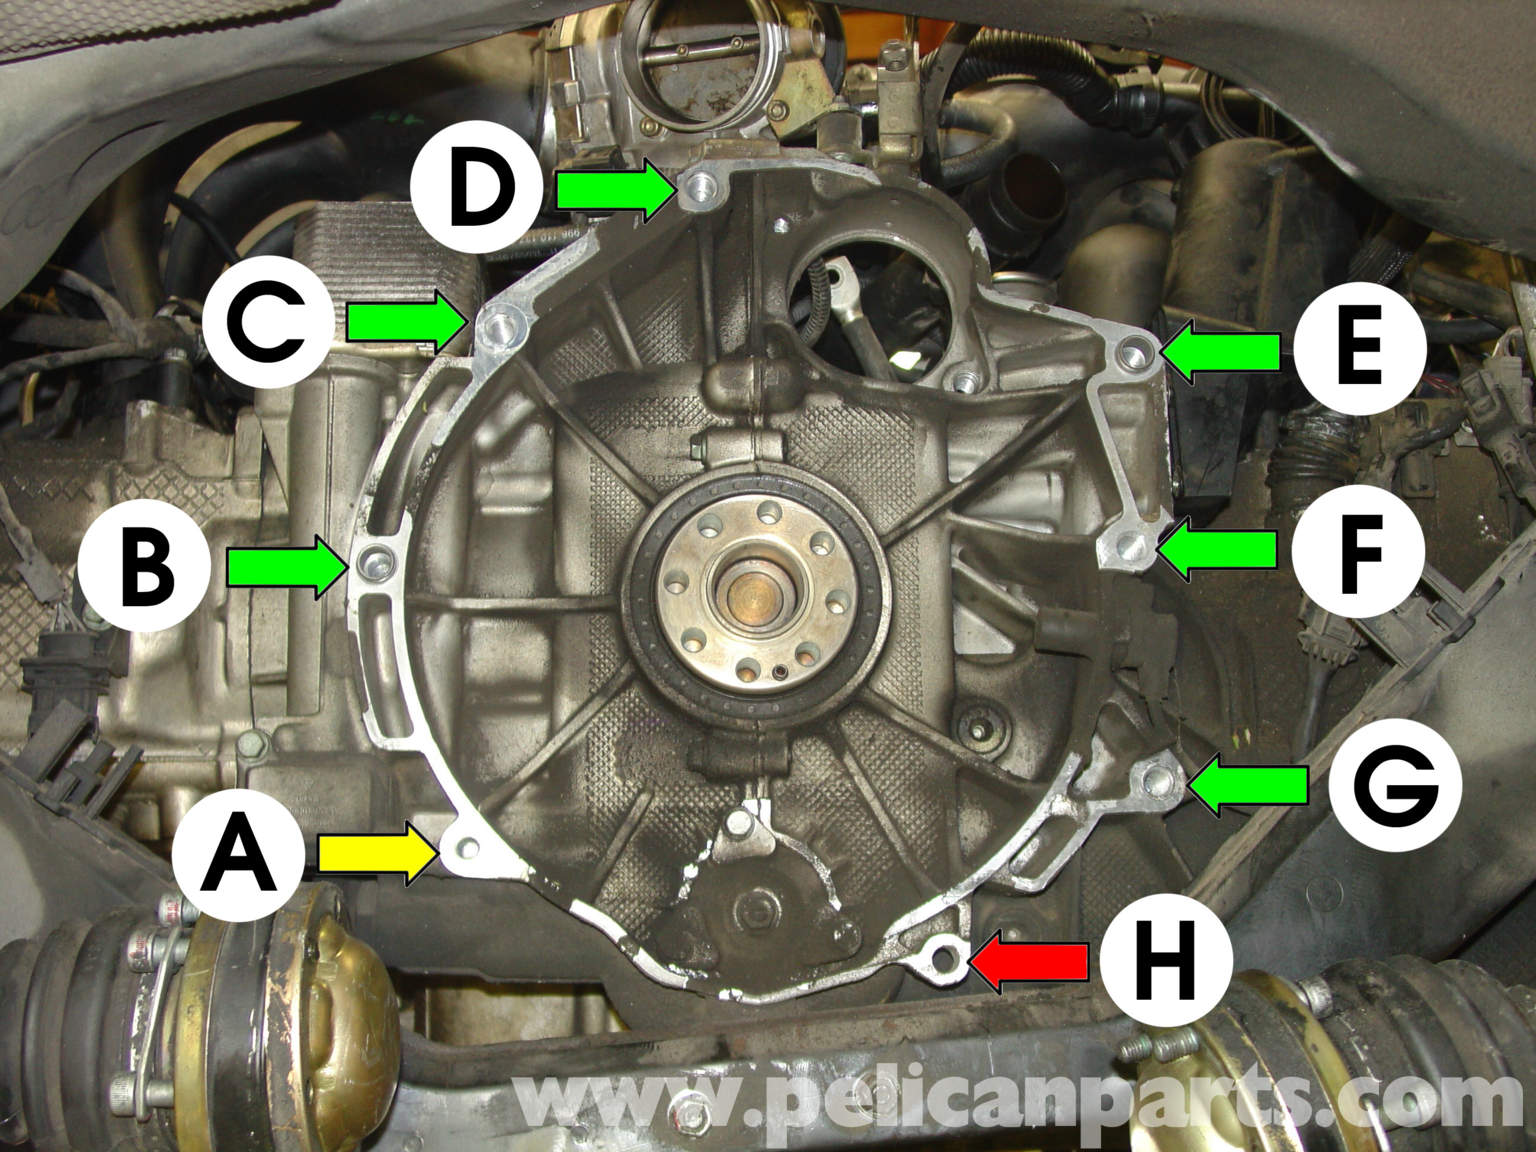 e36 starter wiring diagram example of fishbone with cause and effect bell housing bolts threading in hard - pelican parts technical bbs